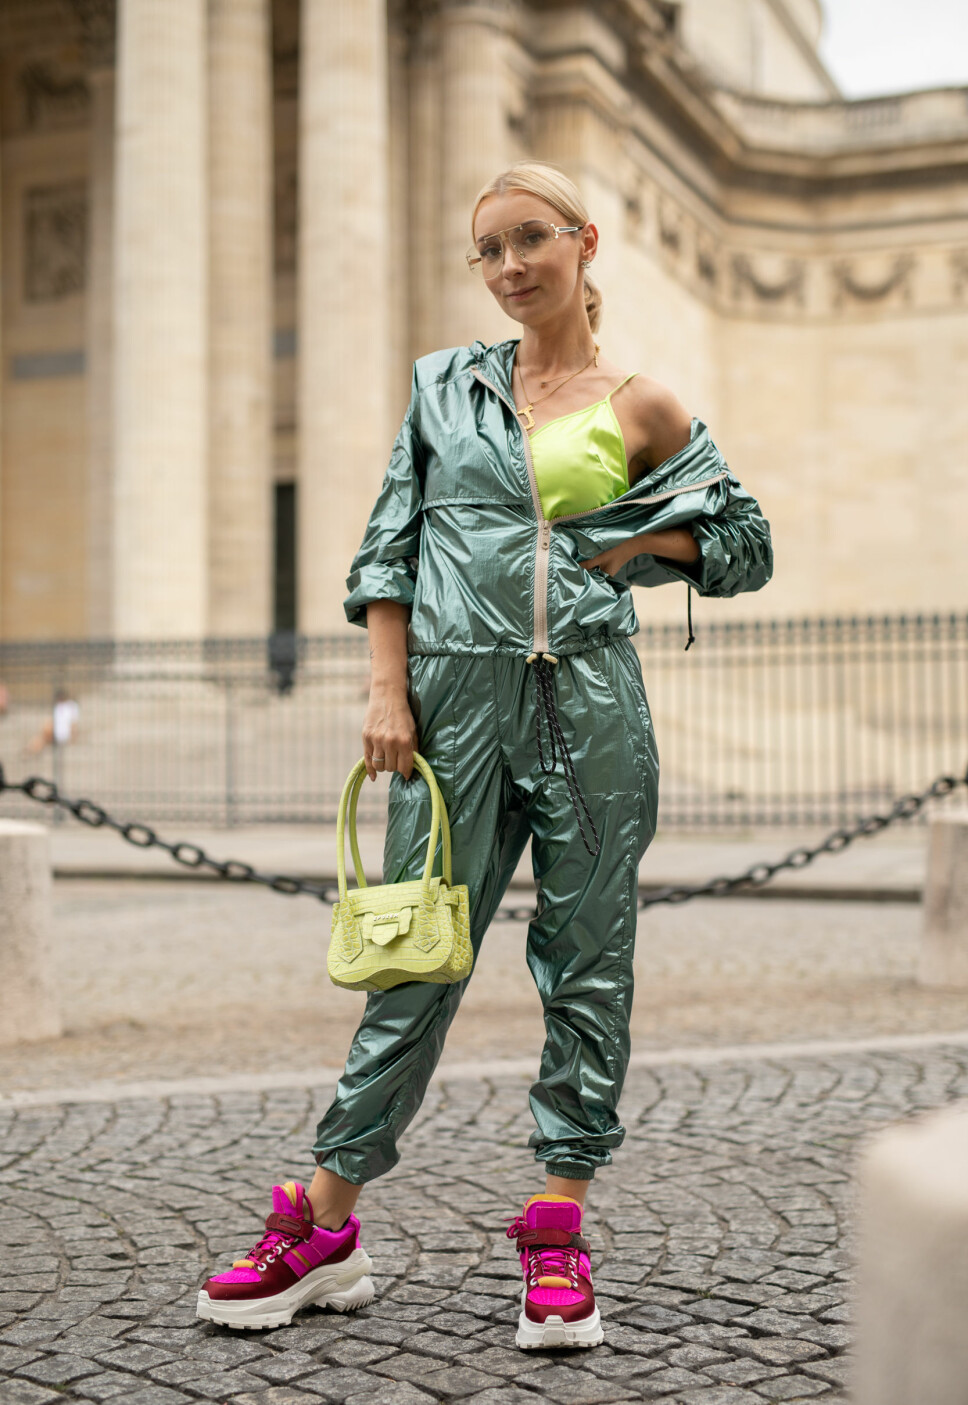 CHUNKY SNEAKERS ANNO 2019: Streetstyle med chunky sneakers under Paris Fashion Week i juni 2019.